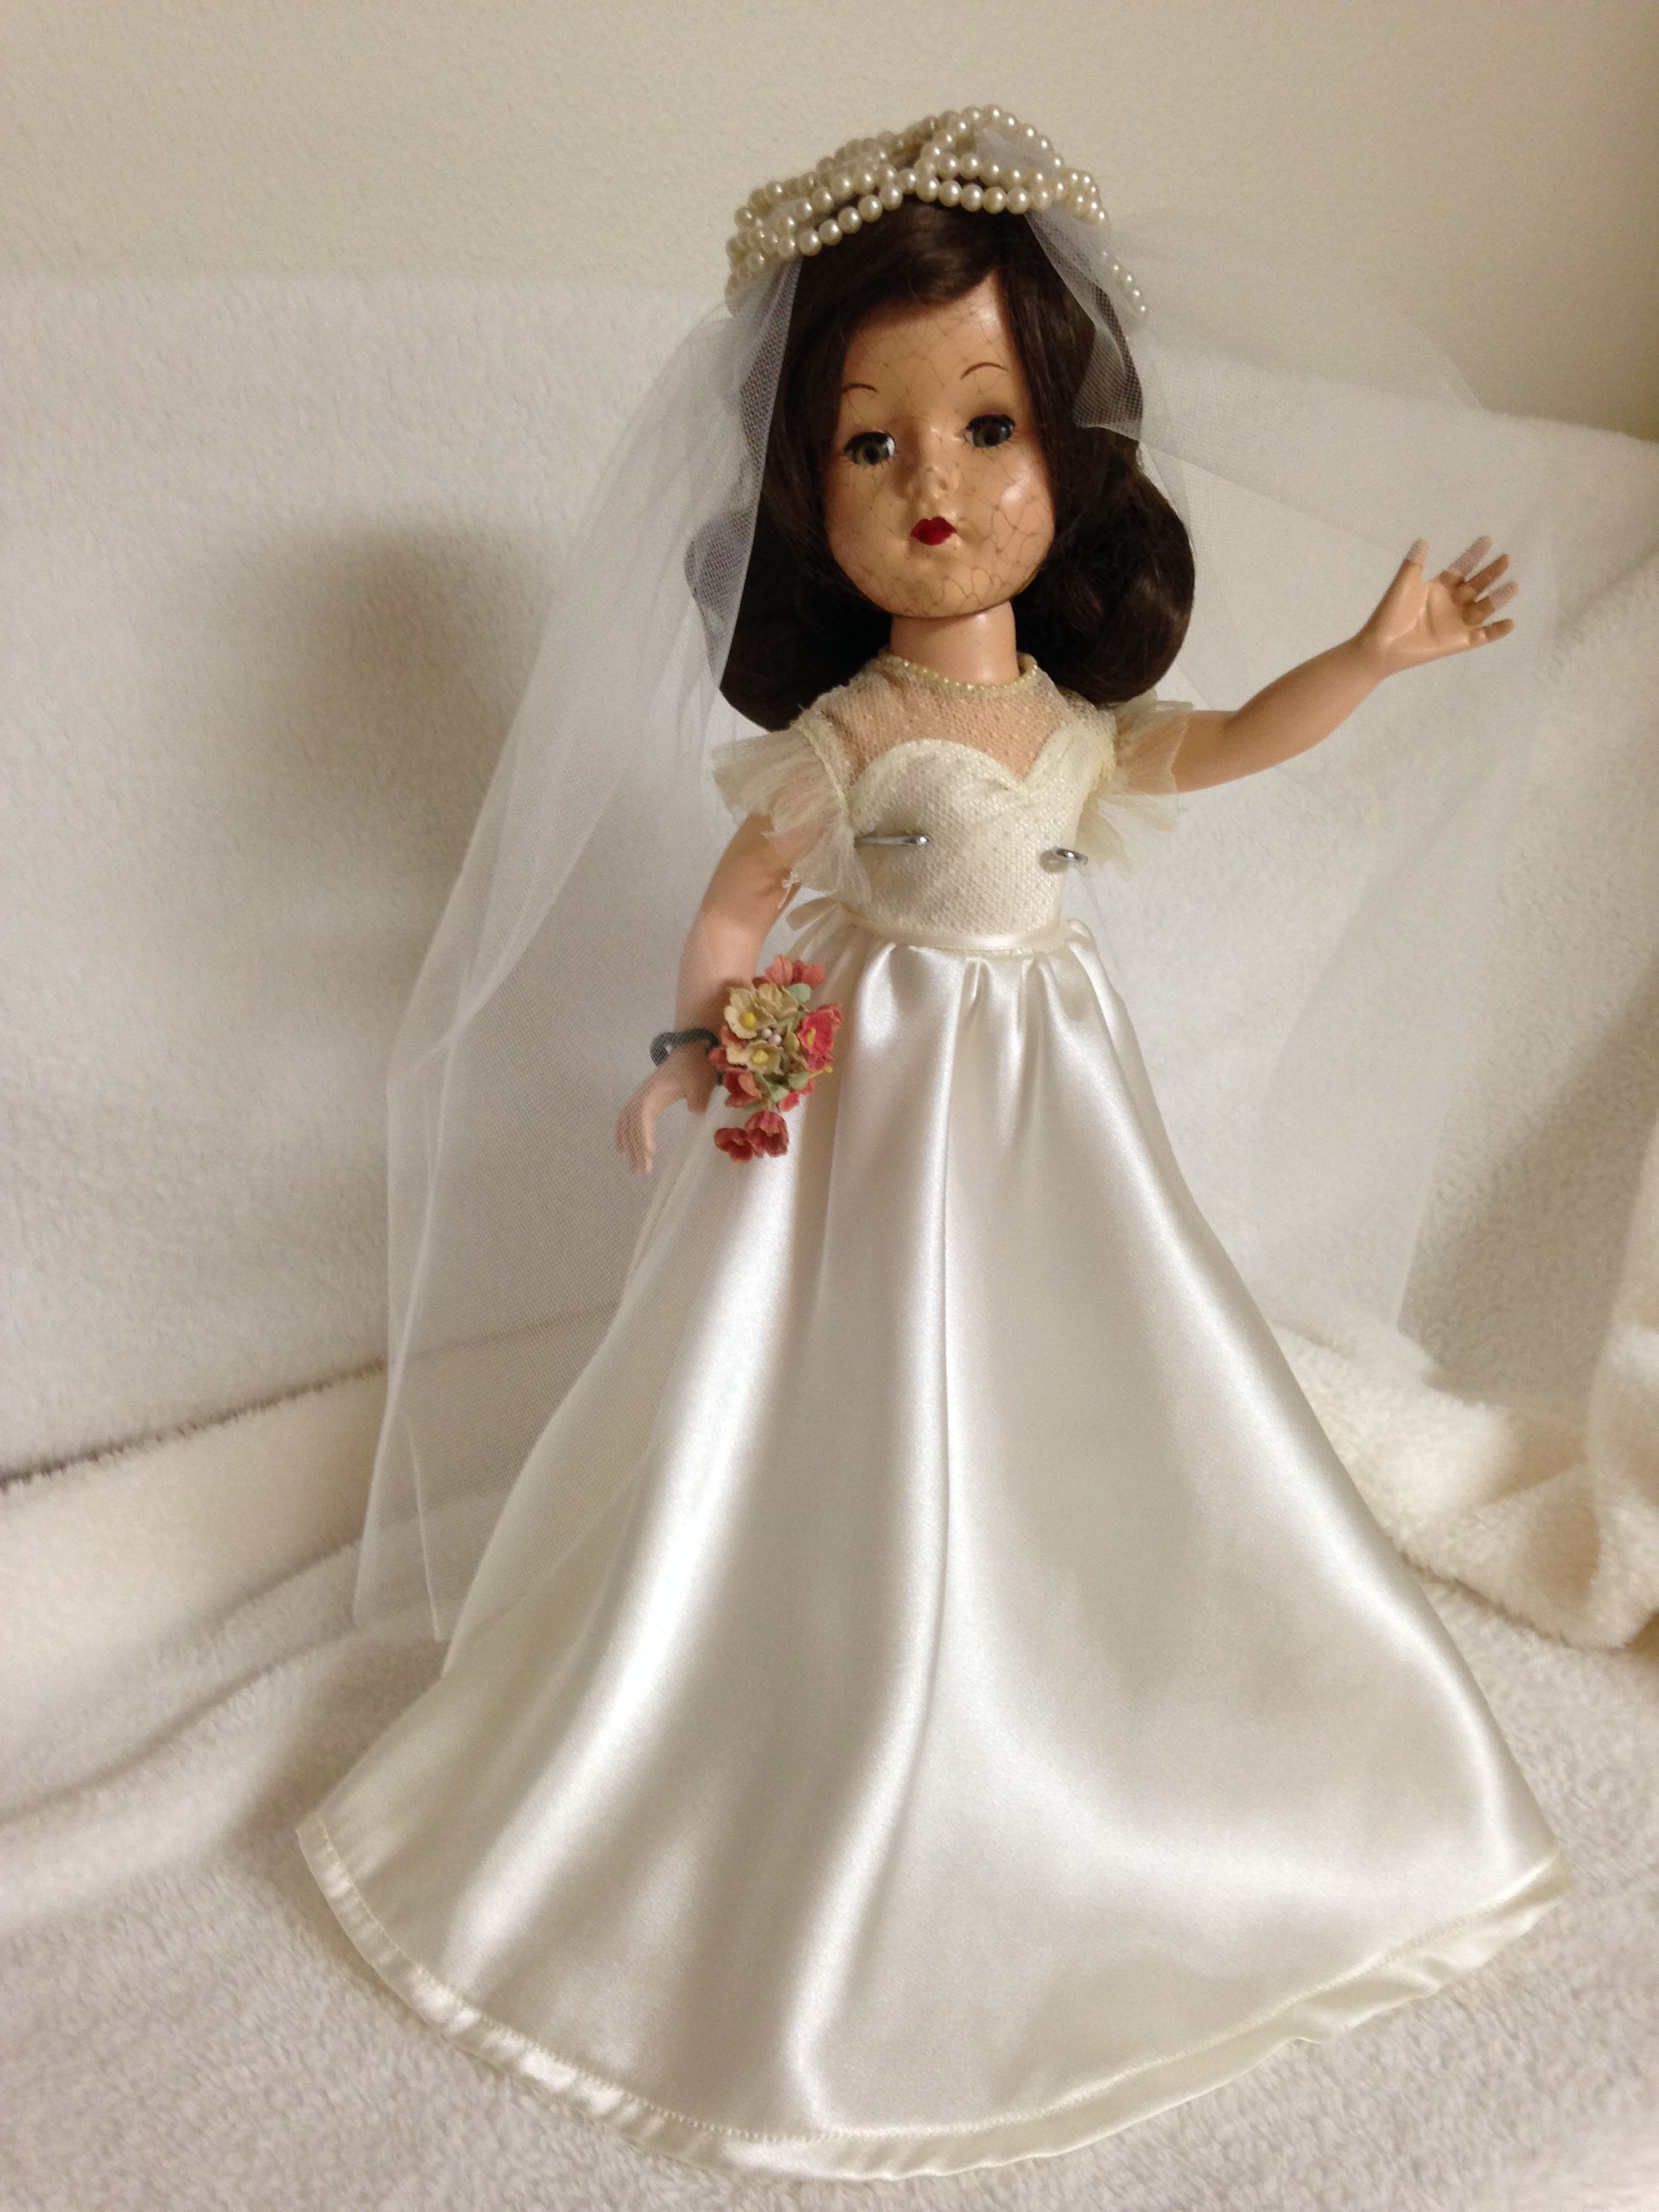 FOR SALE American Character Sweet Sue Bride1955. She is